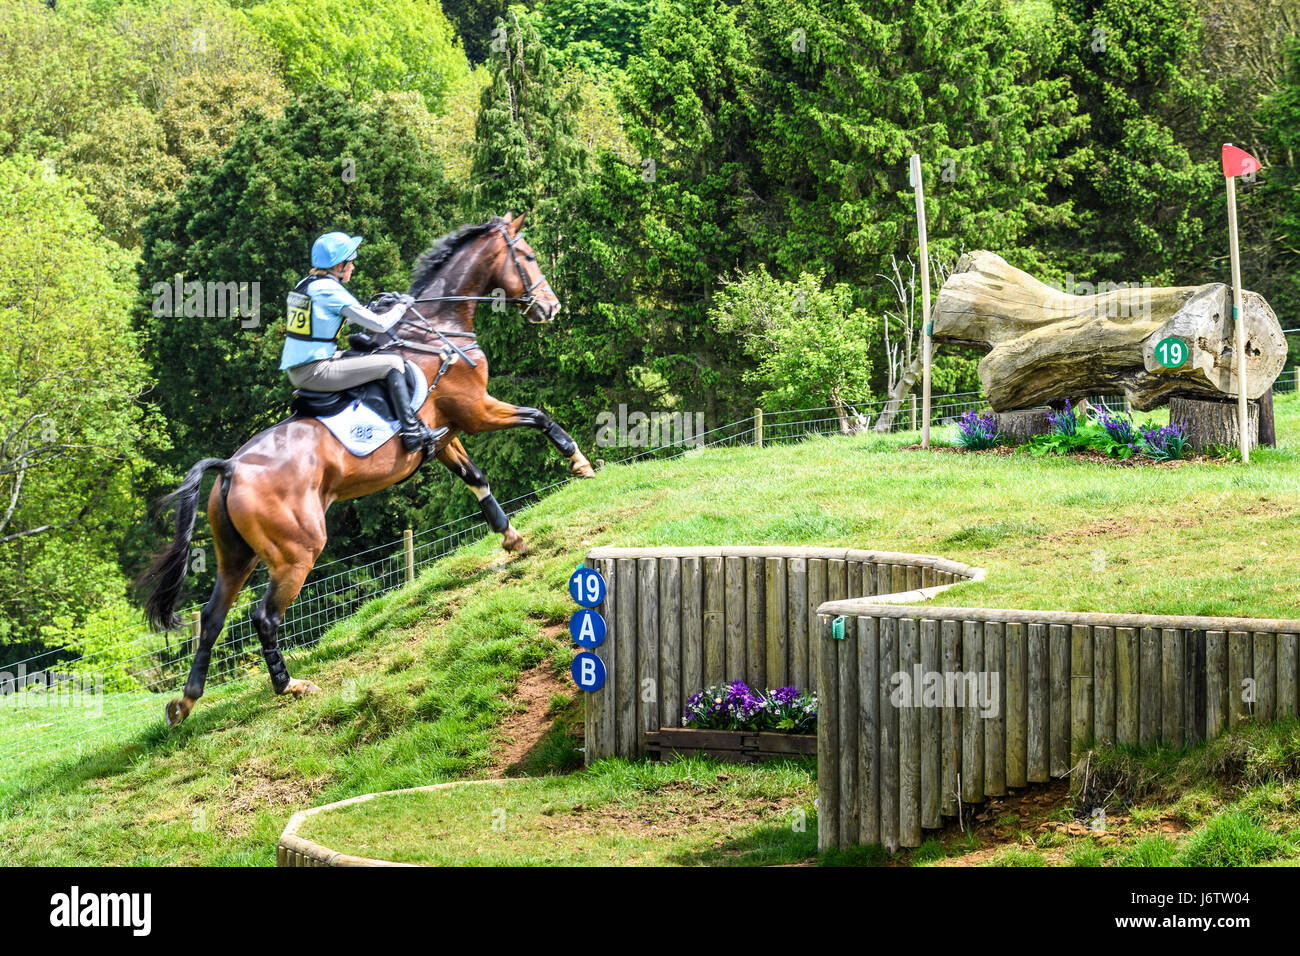 Rockingham Castle, Corby, UK. 21st May, 2017. Izzy Taylor and her horse Zippi Jazzman run uphill towards a log obstacle Stock Photo